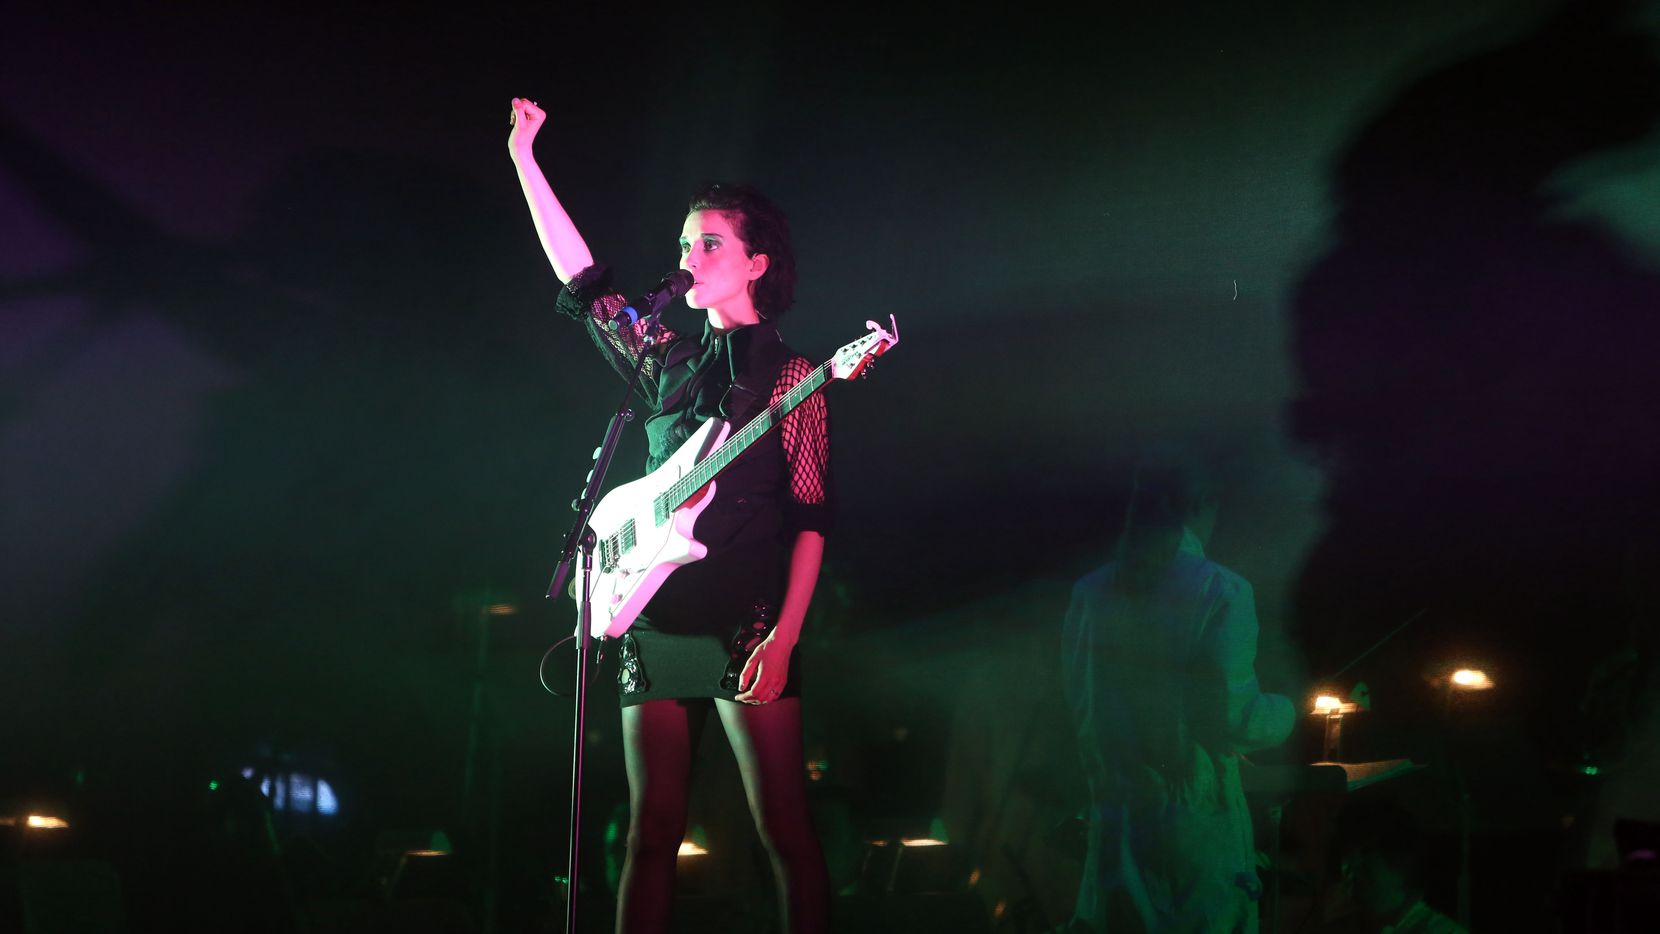 St. Vincent performs with the Dallas Symphony Orchestra at the Winspear Opera House in Dallas, Texas, Thursday, May 17, 2015. (Allison Slomowitz/ Special Contributor)